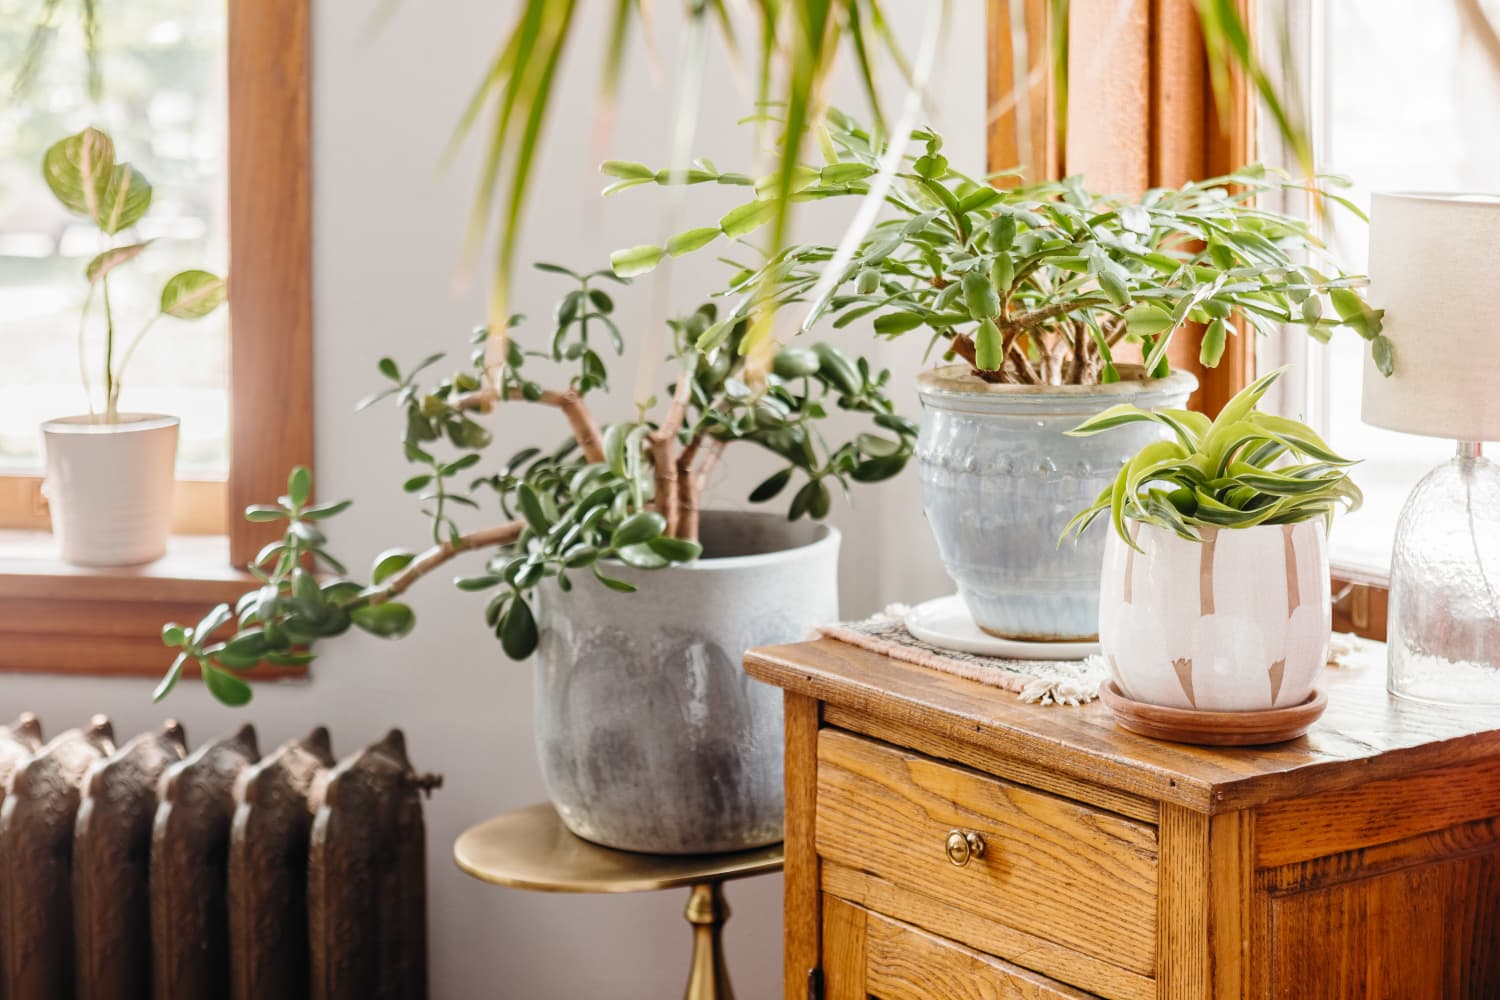 2 Things You Should Never Do as a New Plant Parent if You Want Healthy Houseplants